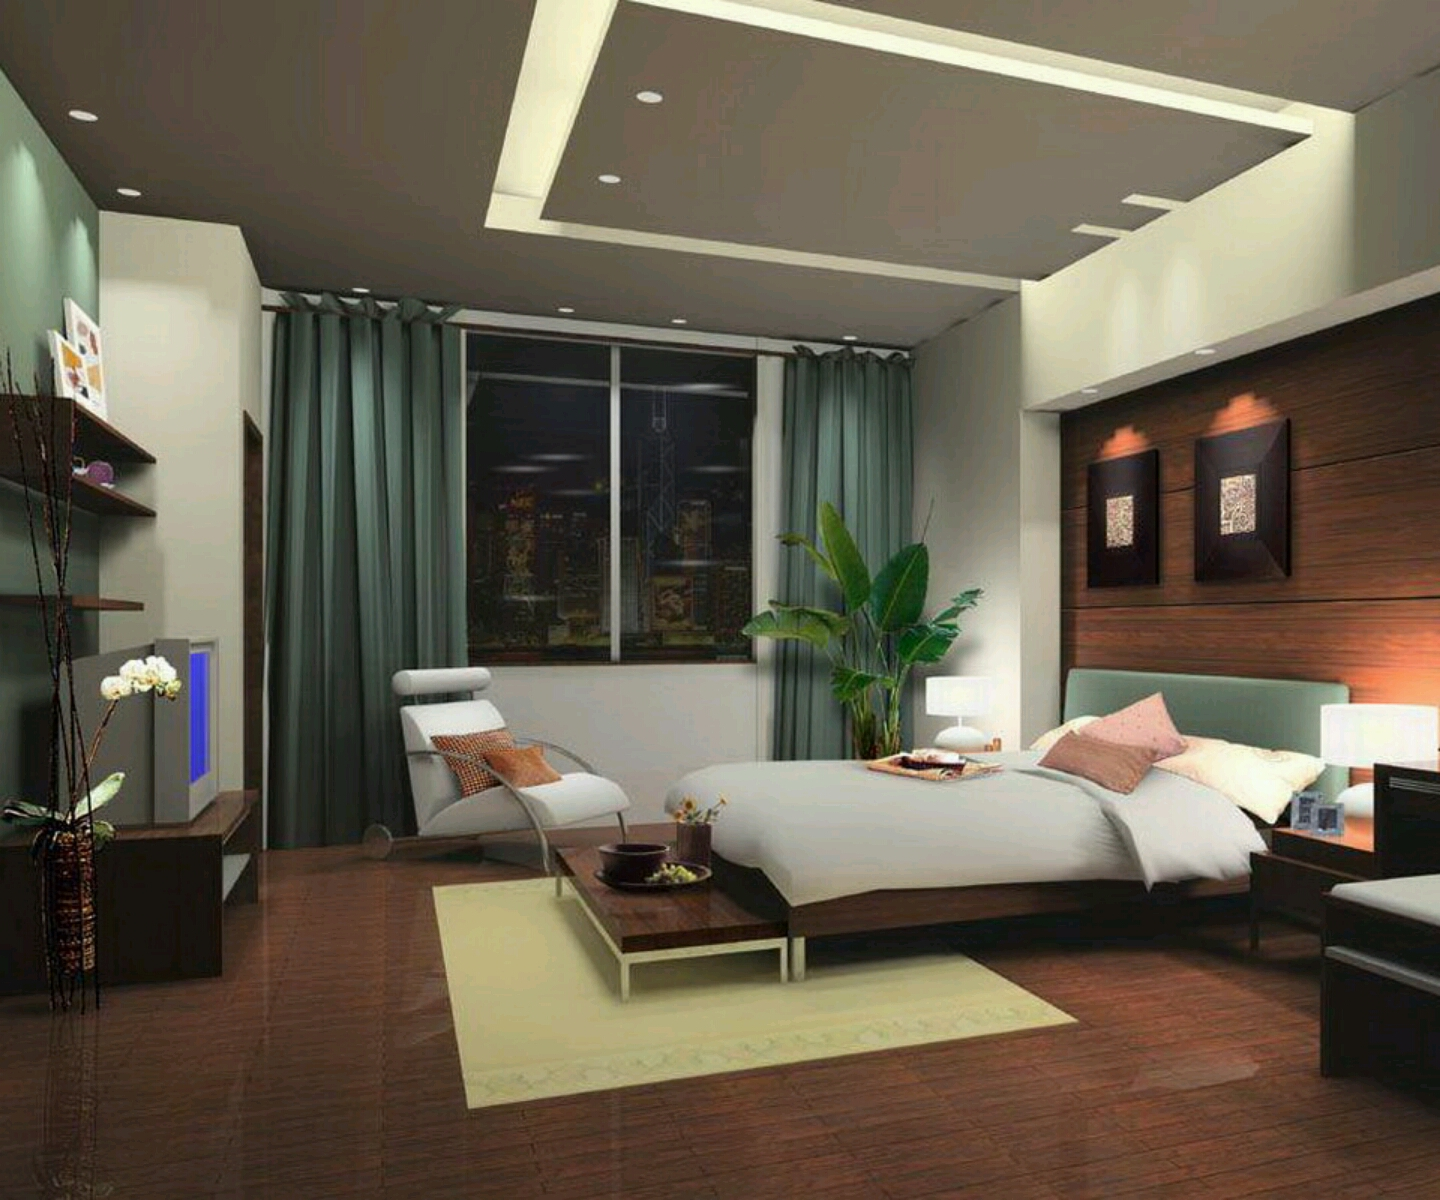 New home designs latest modern bedrooms designs best ideas for Latest interior design ideas